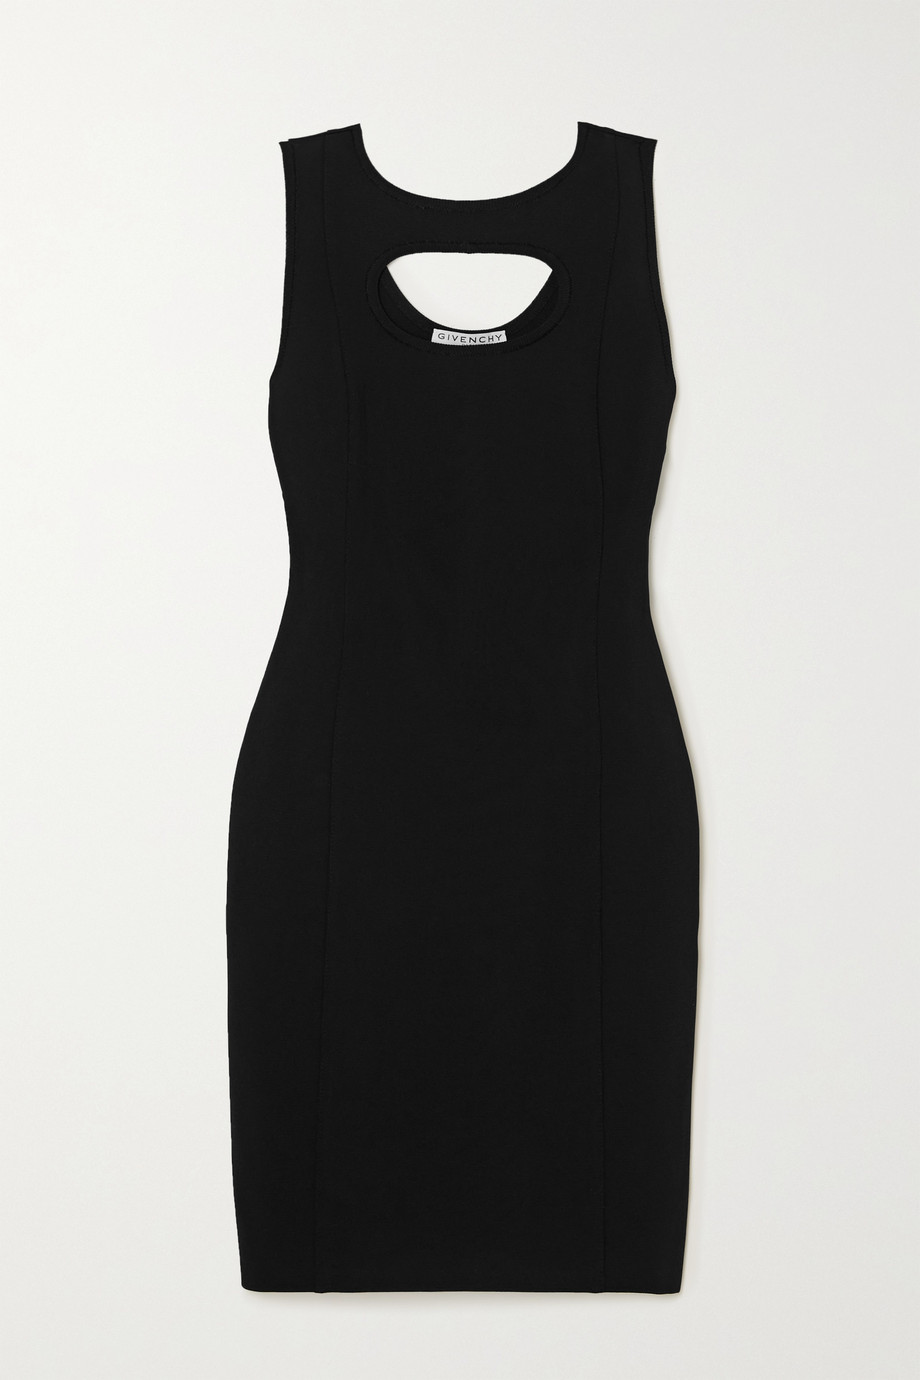 Givenchy Cutout stretch-crepe dress